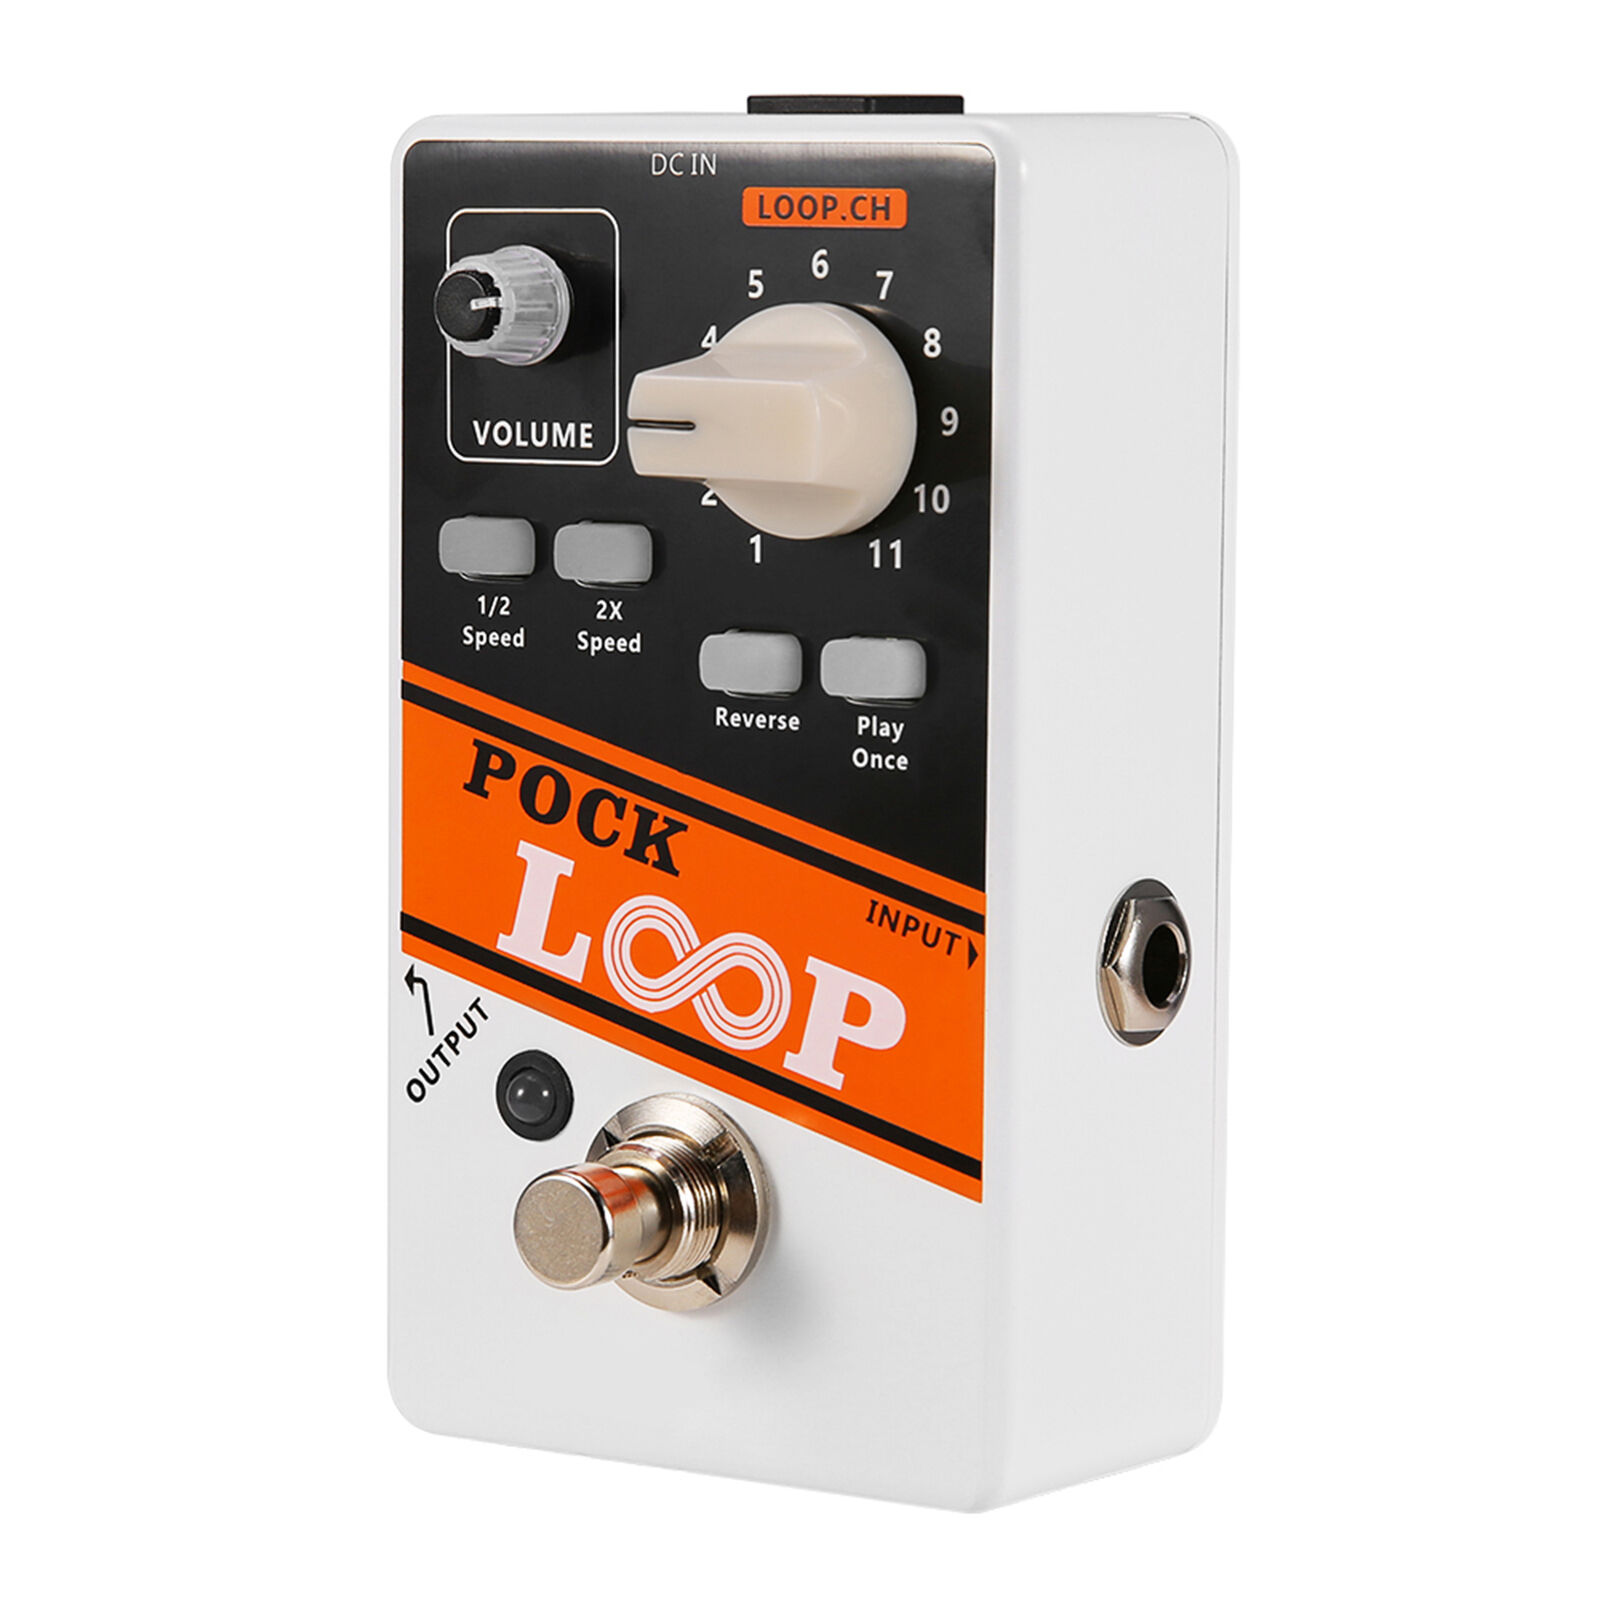 POCK LOOP Guitar Effect Looper Pedal True Bypass Max.330mins Recording Time